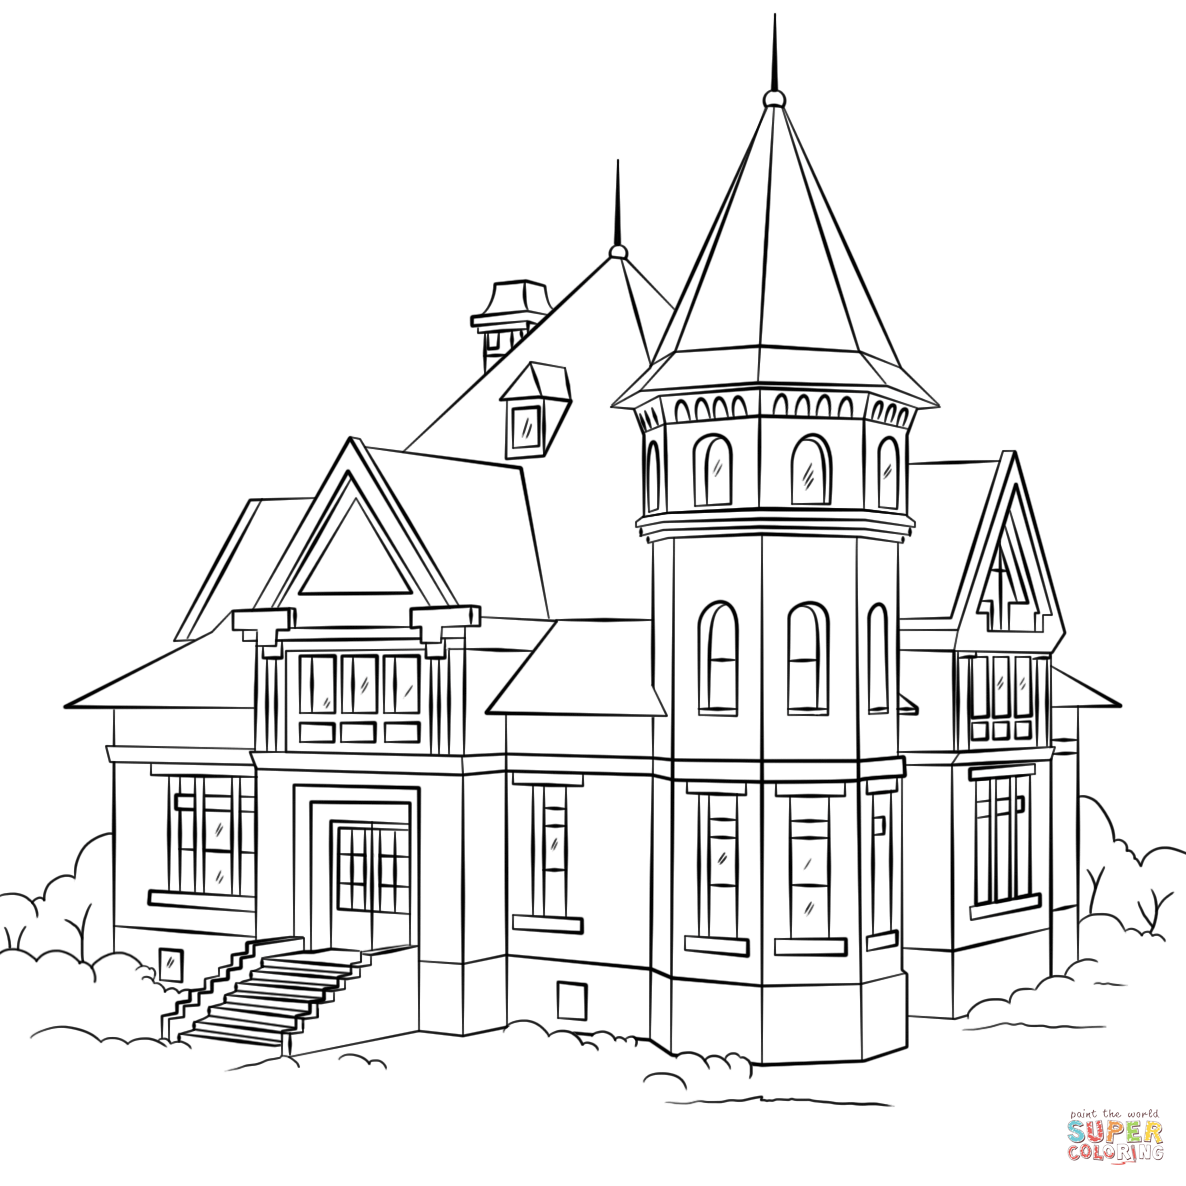 The White House coloring pages | House colouring pages, House ... | 1186x1186